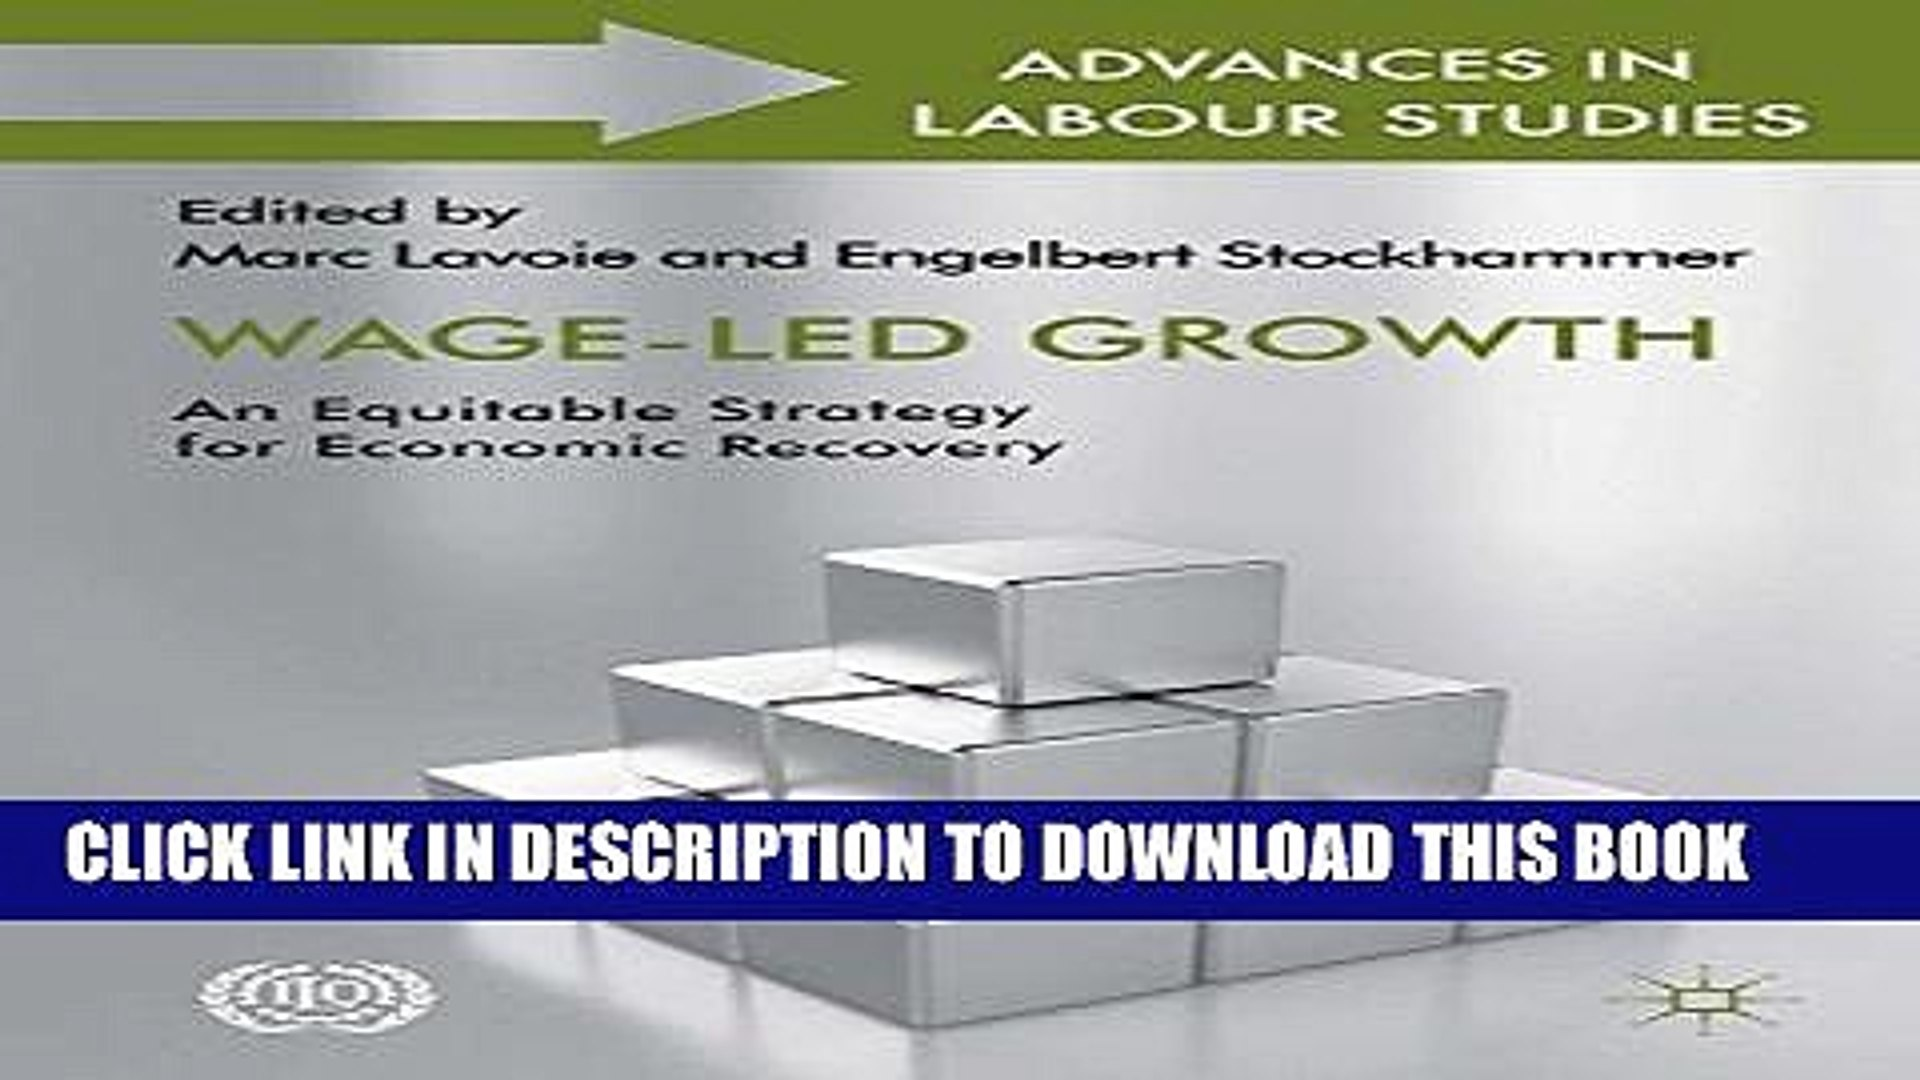 [PDF] Wage-Led Growth: An Equitable Strategy for Economic Recovery Popular Collection